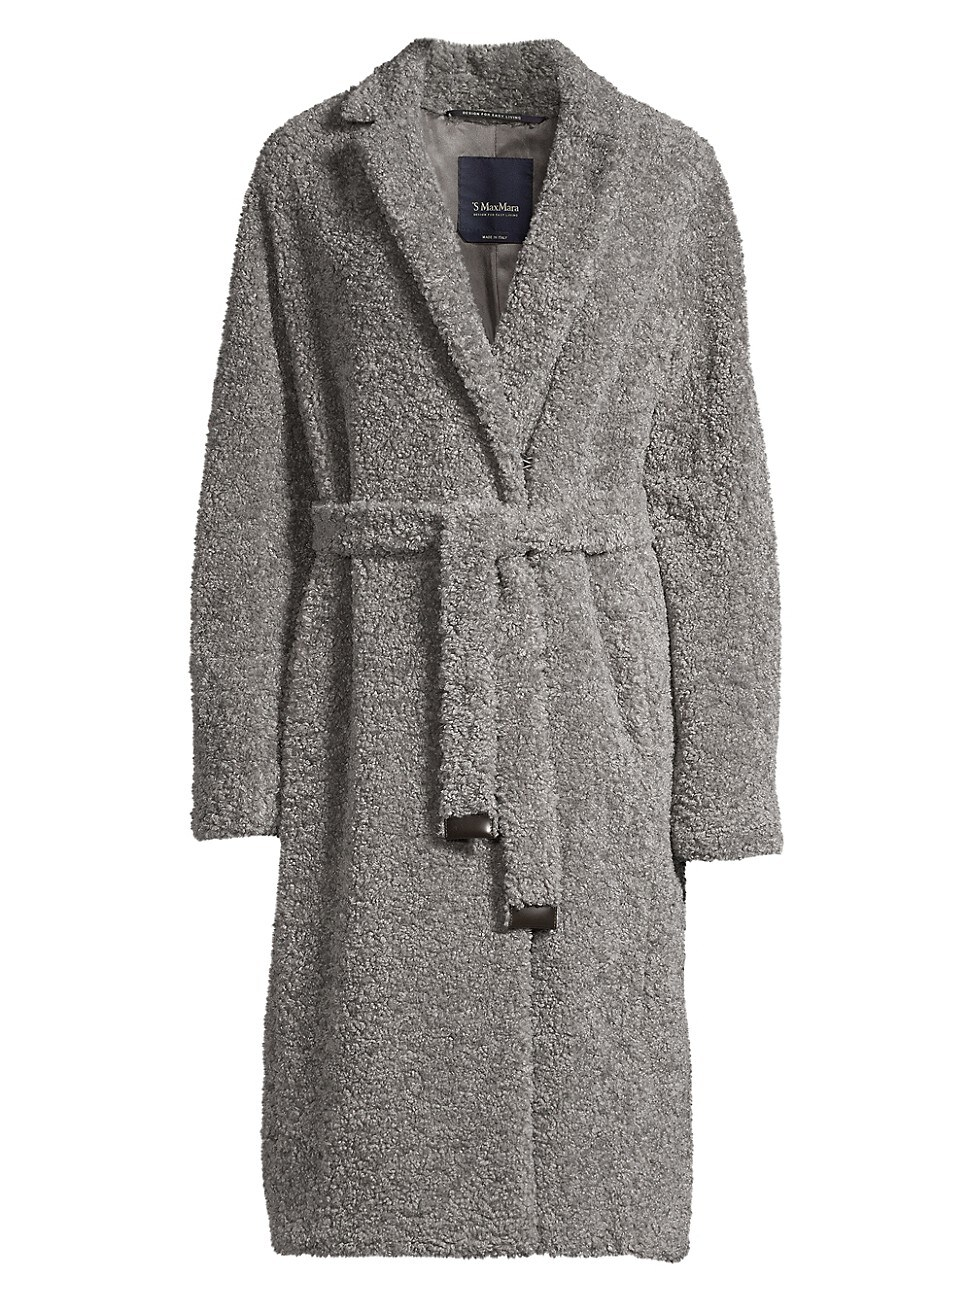 MAX MARA WOMEN'S AGIATO FAUX-SHEARLING BELTED COAT